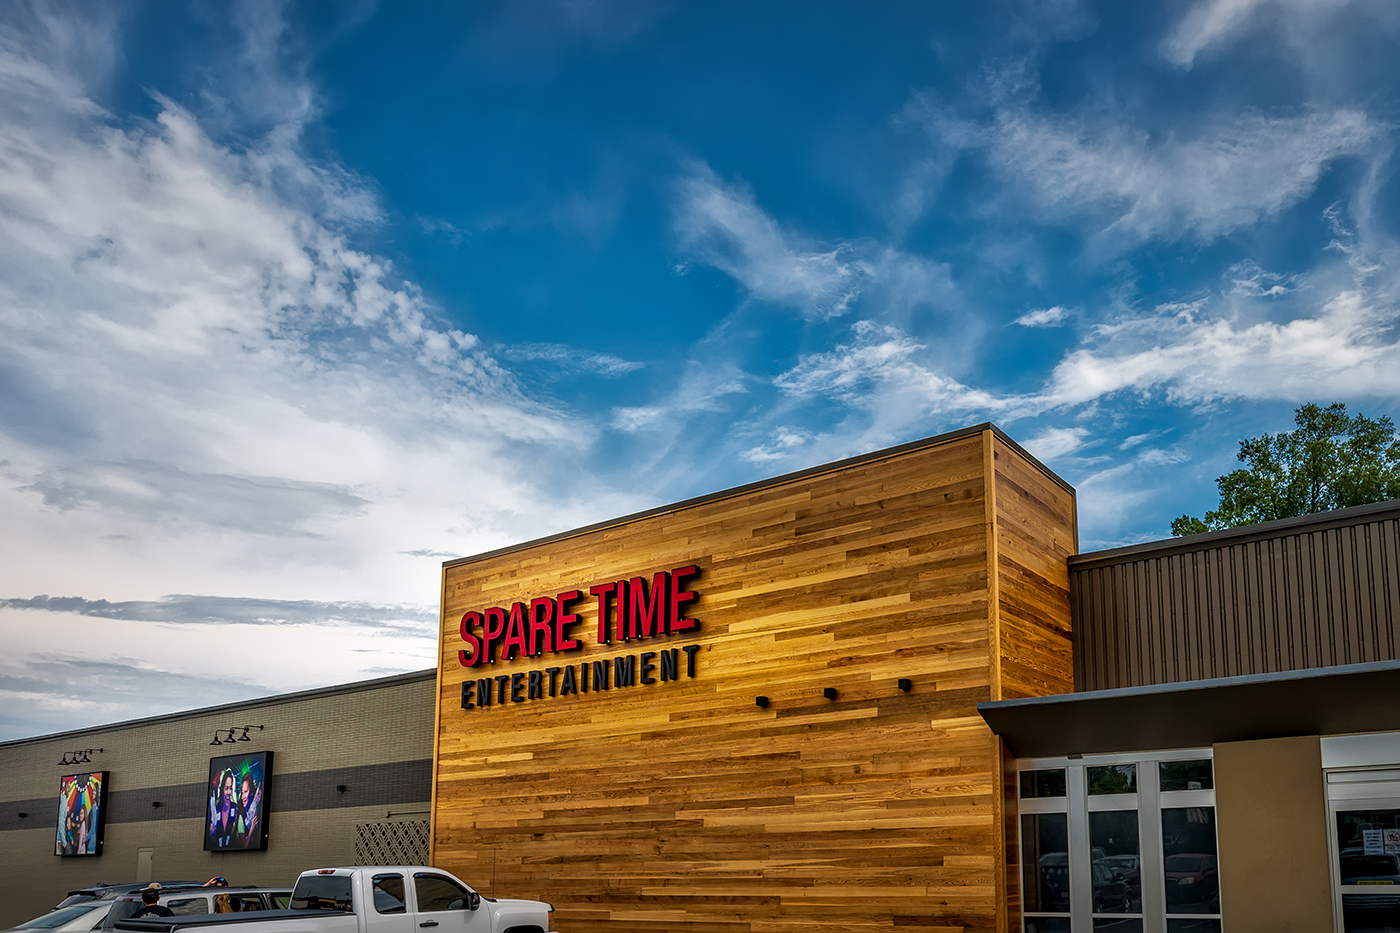 Spare Time Entertainment - Chattanooga   We remodeled an existing bowling alley for the new owner, Spare Time Entertainment. This project consisted of a complete interior and exterior renovation covering bowling, arcade, and putting in a new restaurant space.